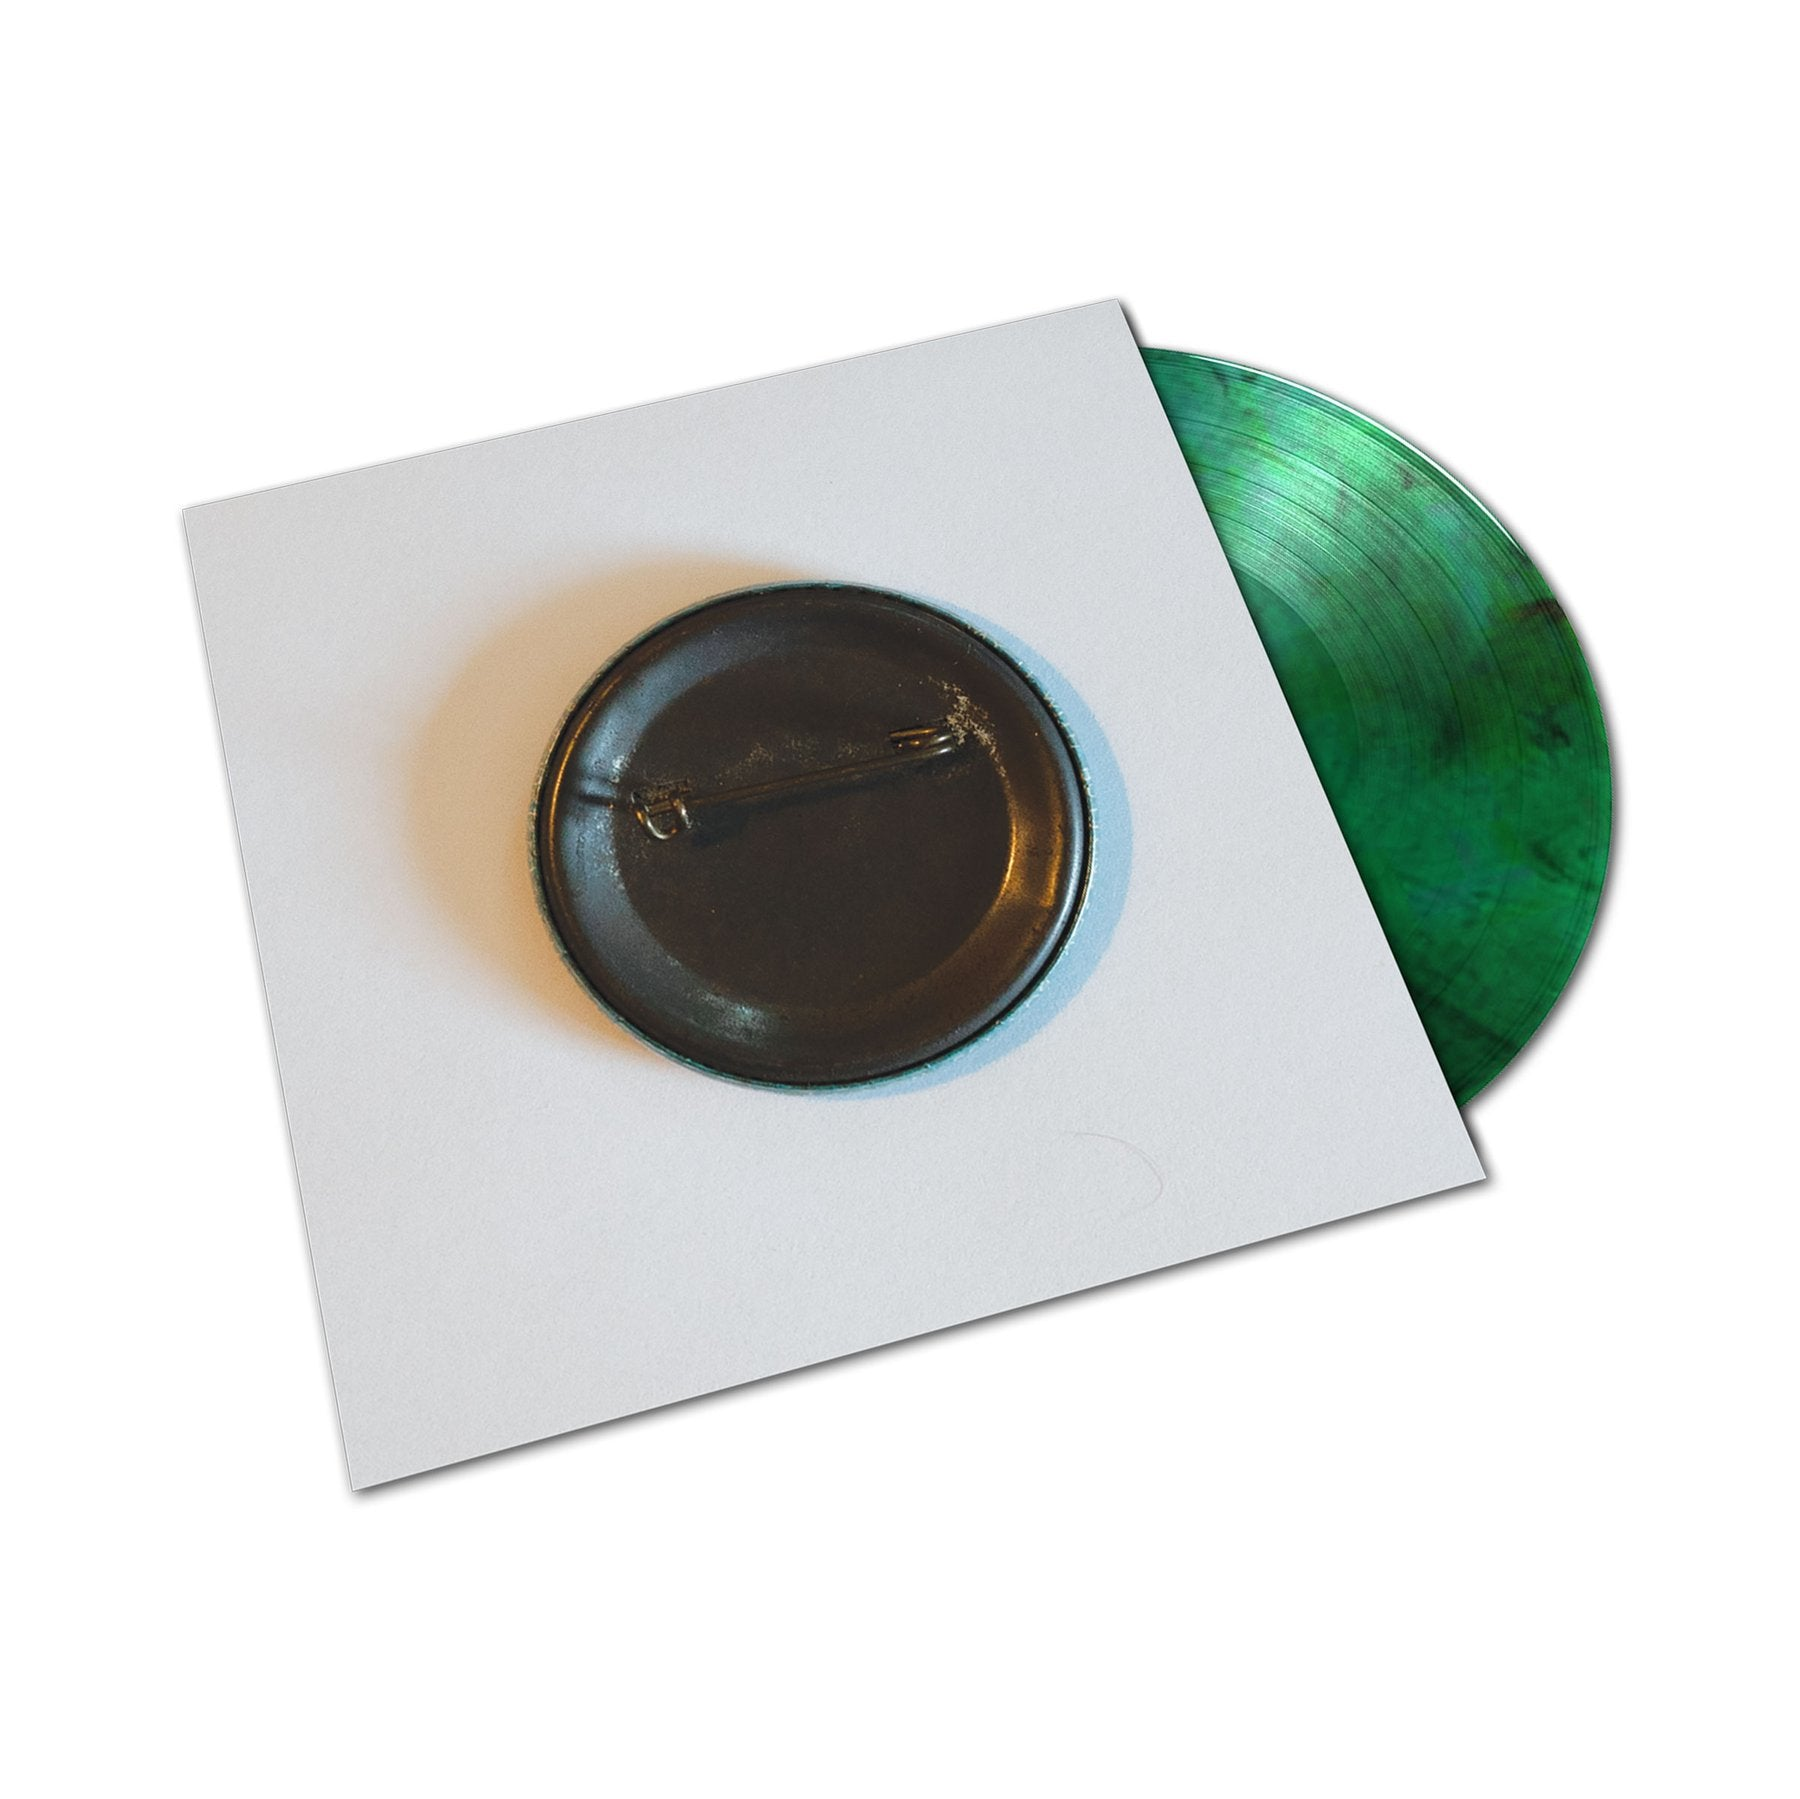 Mac Demarco - Here Comes The Cowboy Green/Black Colour Limited Edition Vinyl Record